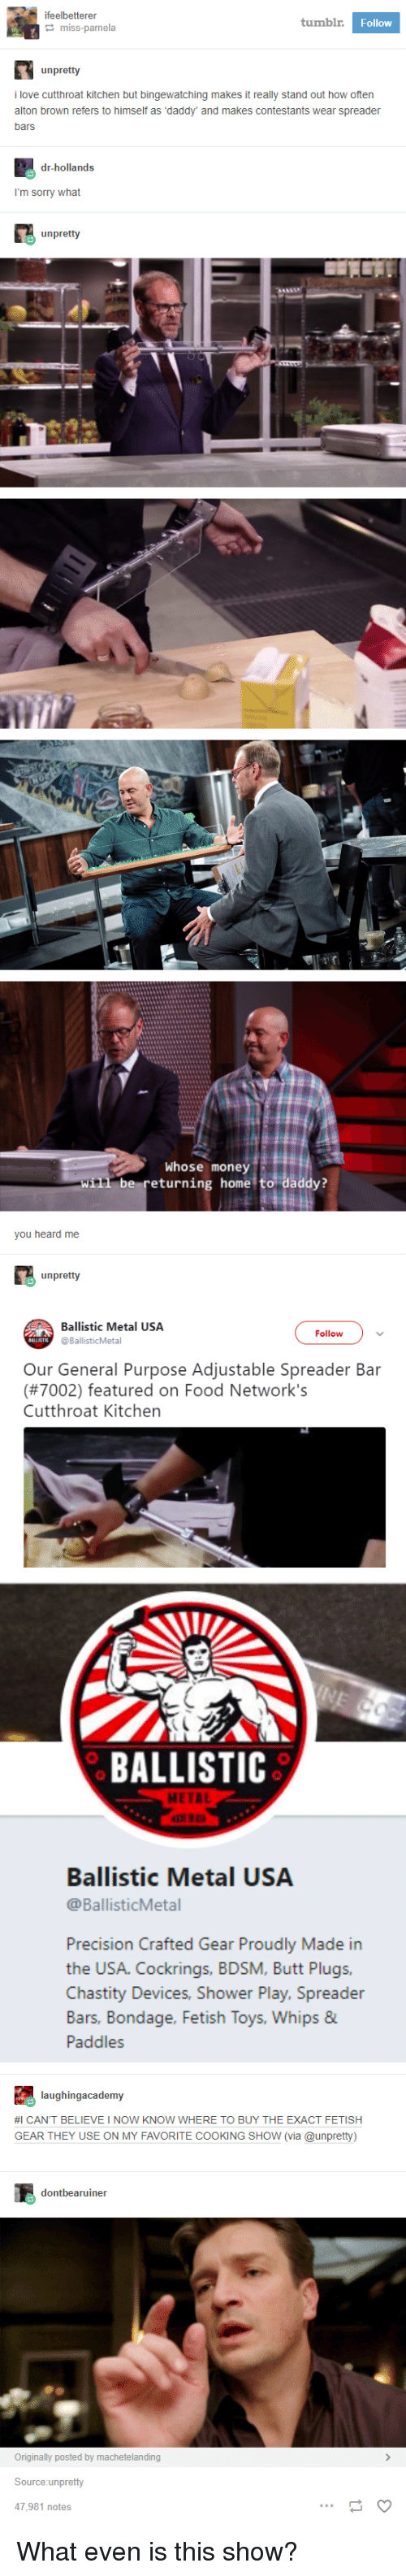 food and love tumblr unpretty love cutthroat kitchen but bingewatching makes it - Brisket And Gravy Cutthroat Kitchen